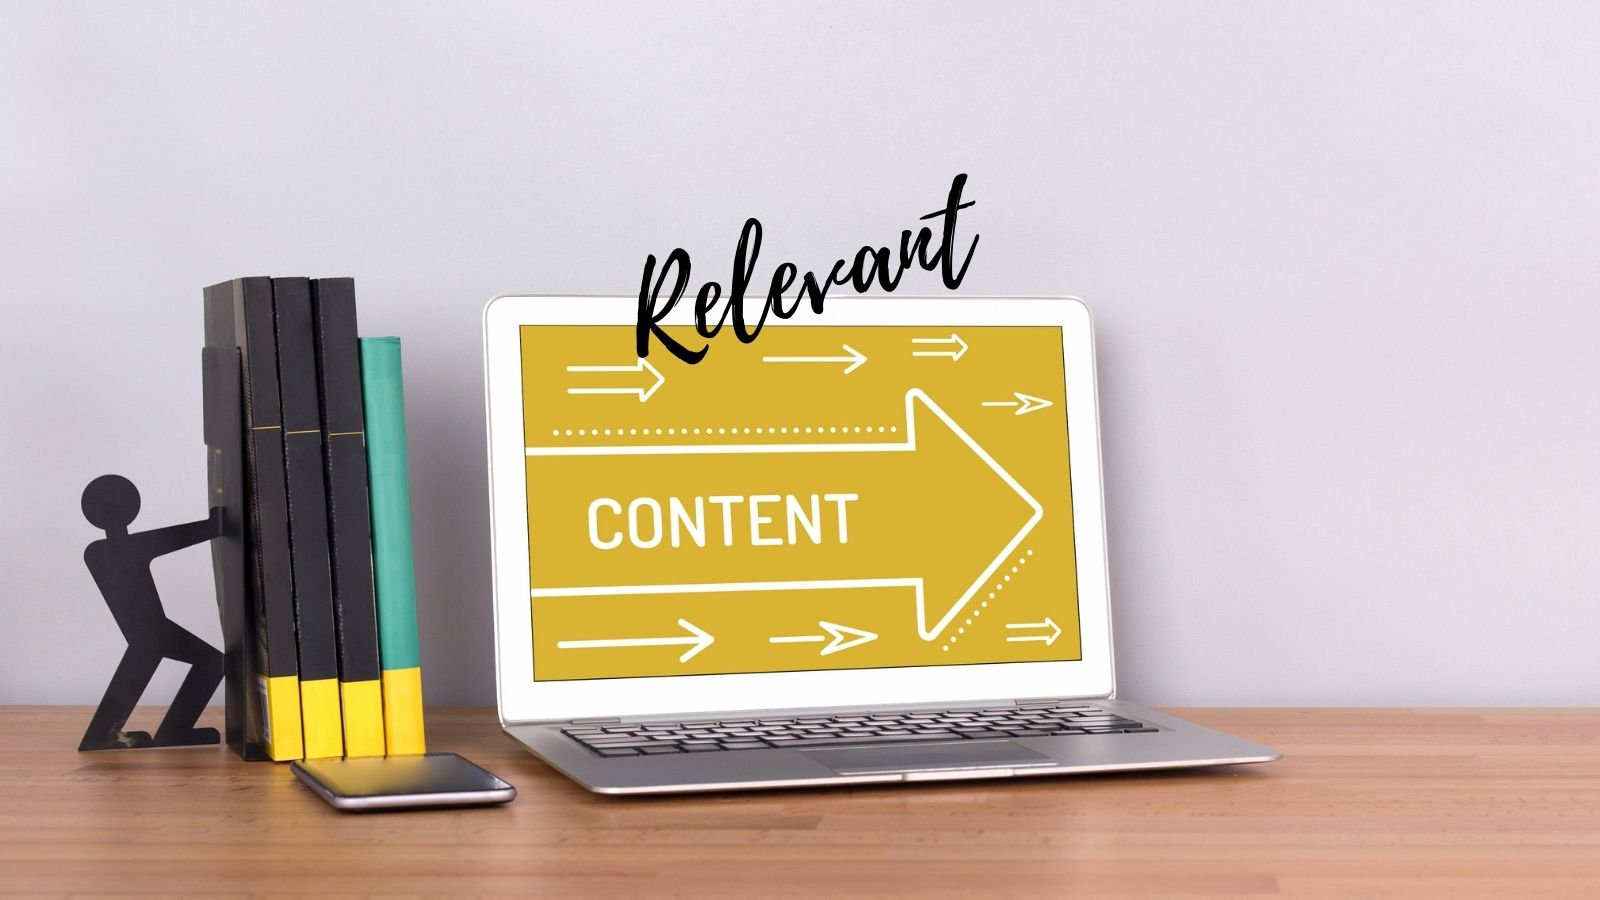 use relevant content in your marketing